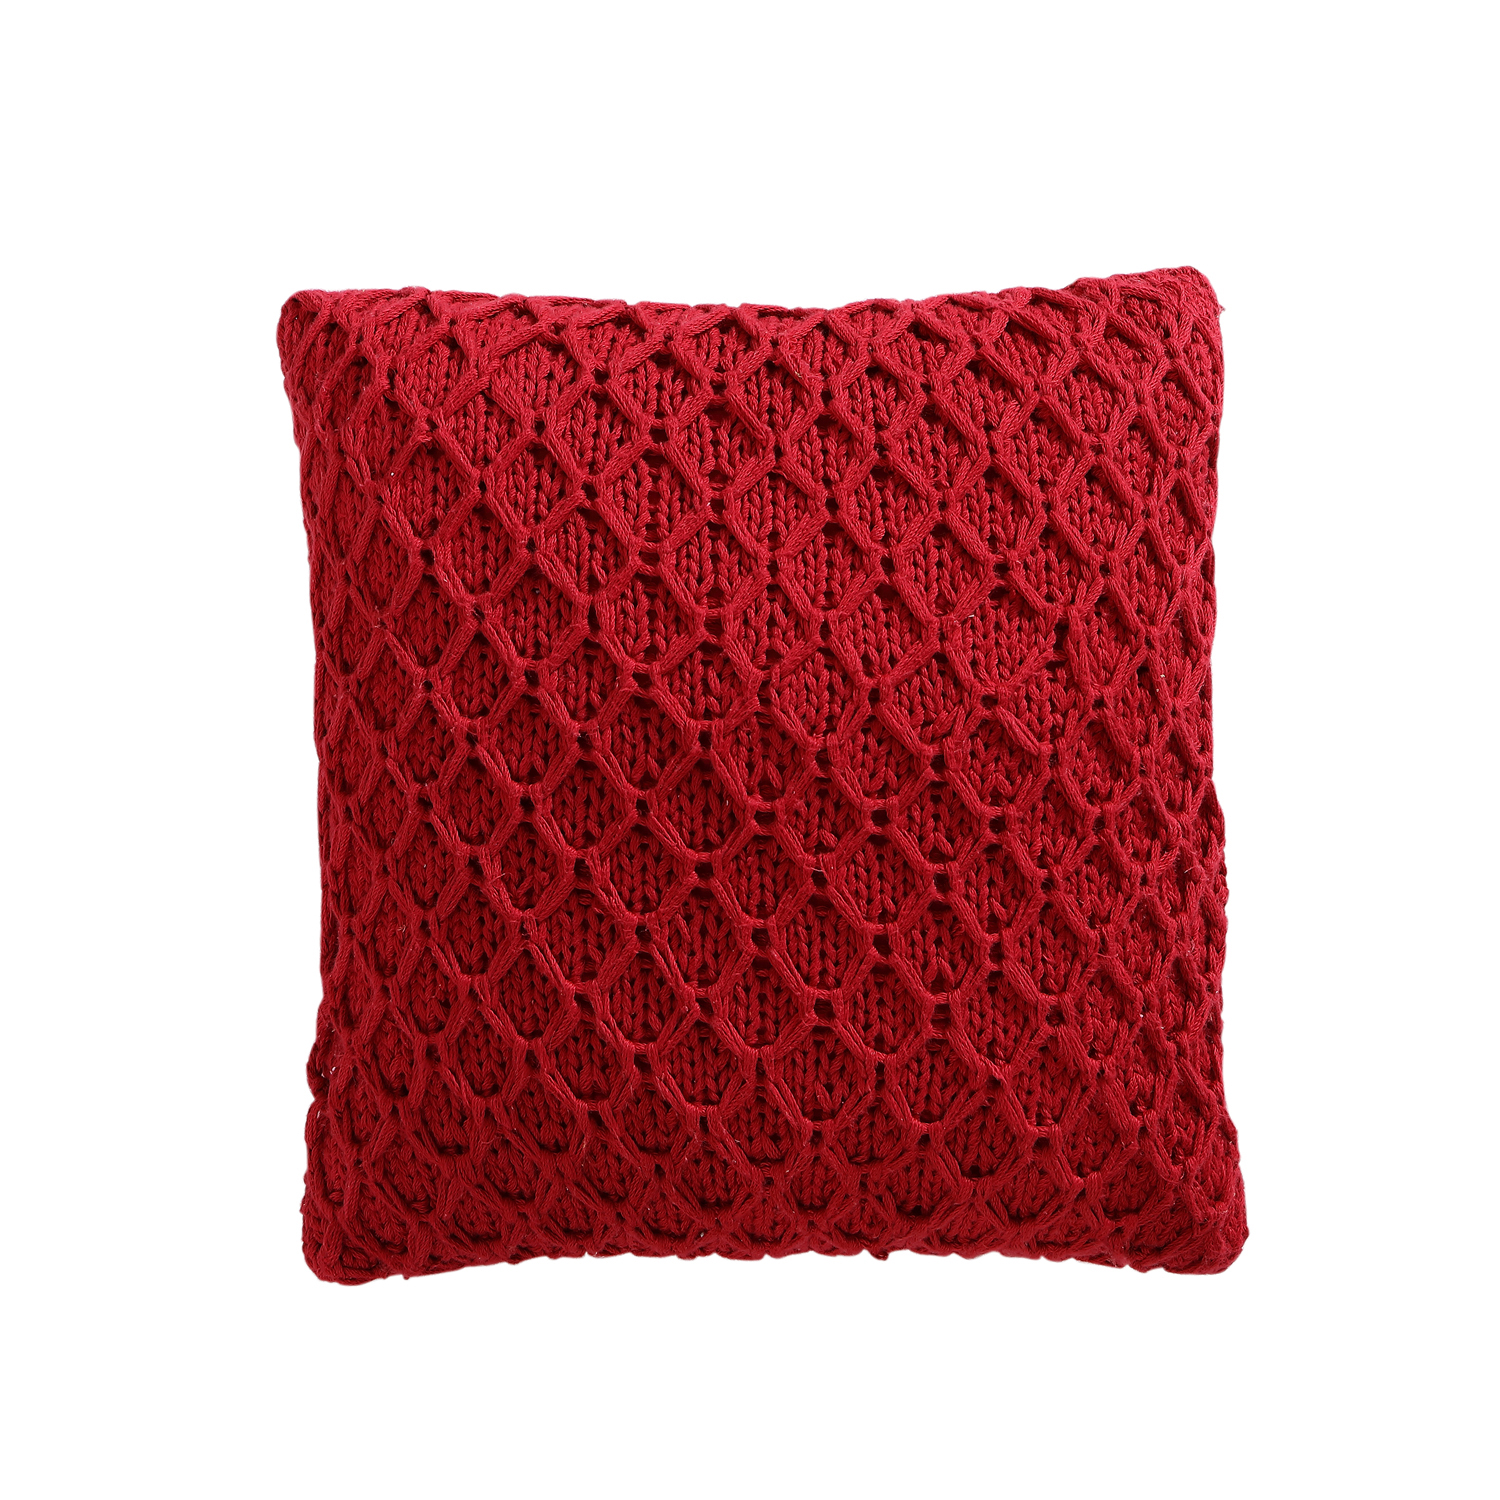 "VC New York Diamond Quilted 18"" x 18"" Square Decorative Throw Pillow, Multiple Colors Available"